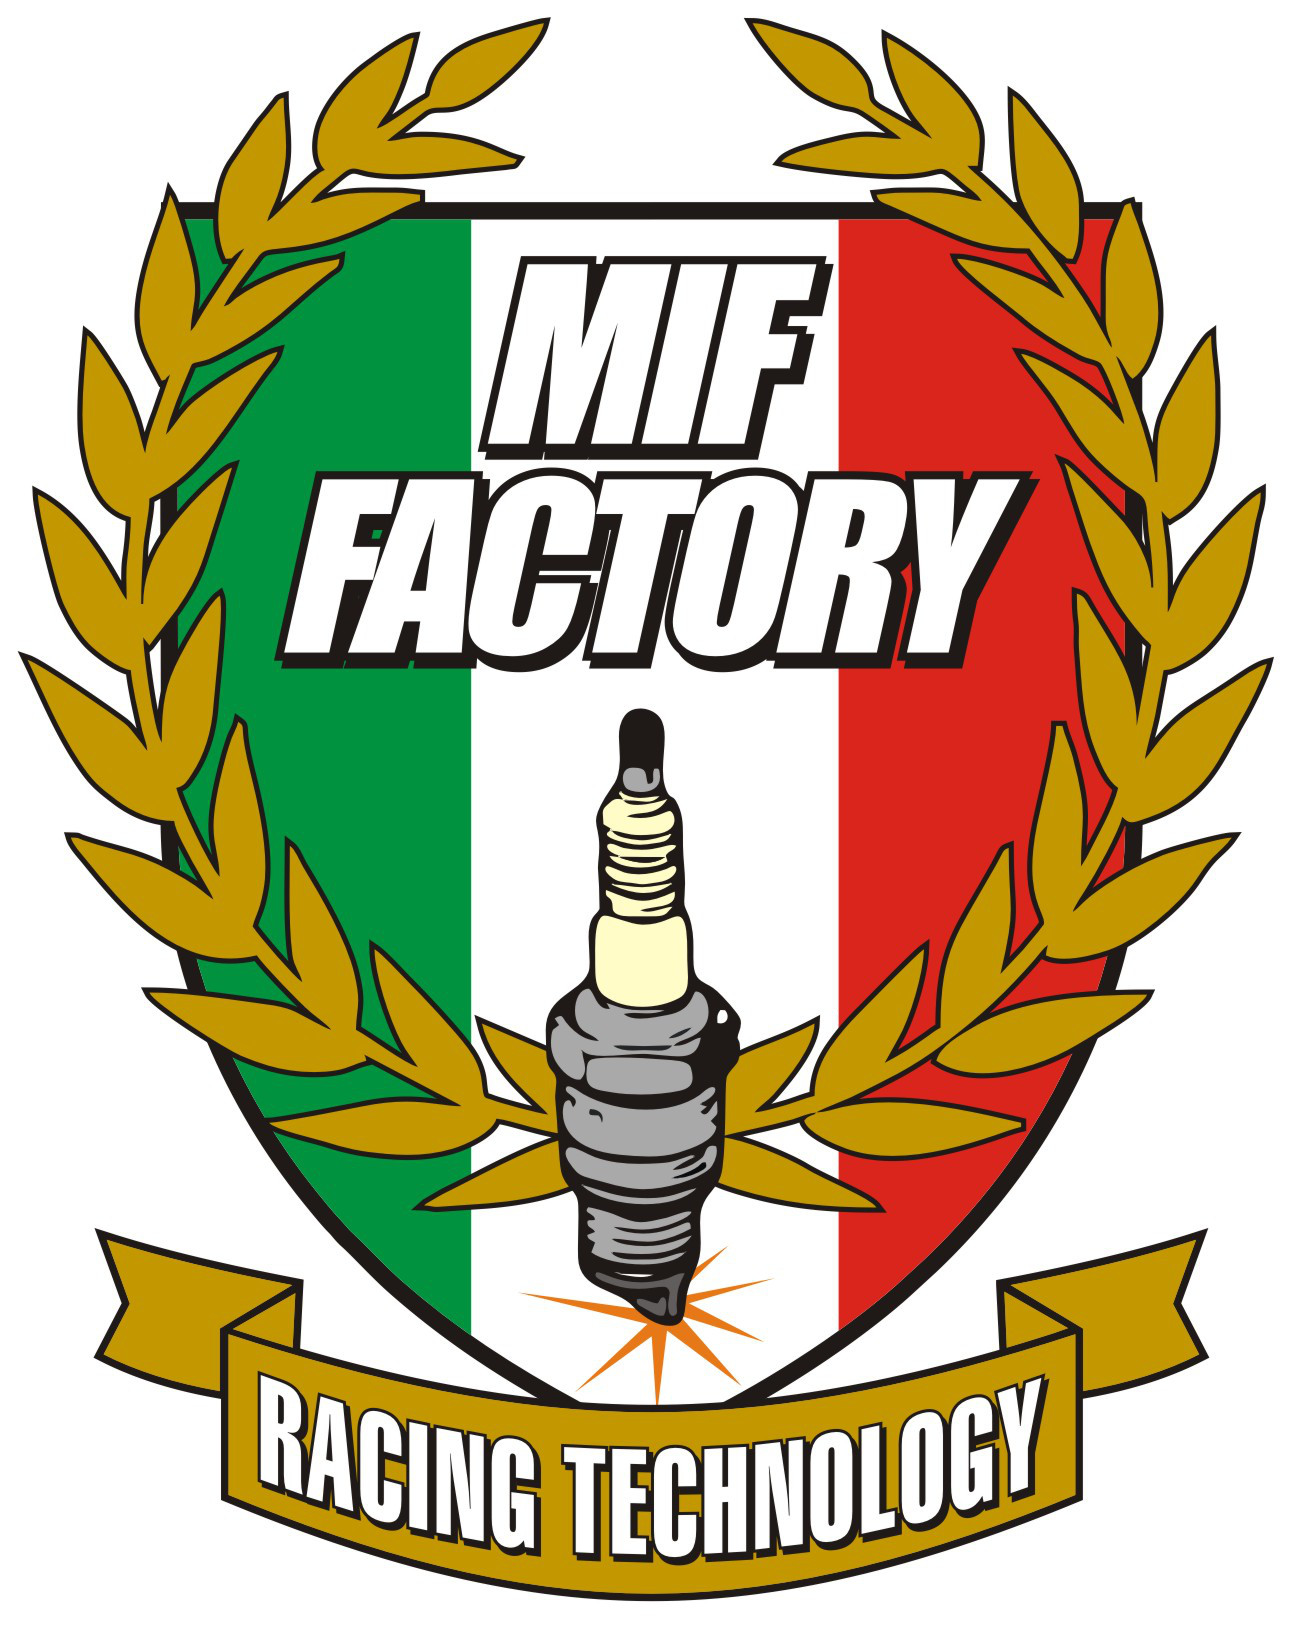 azienda Mif Factory Racing Technology